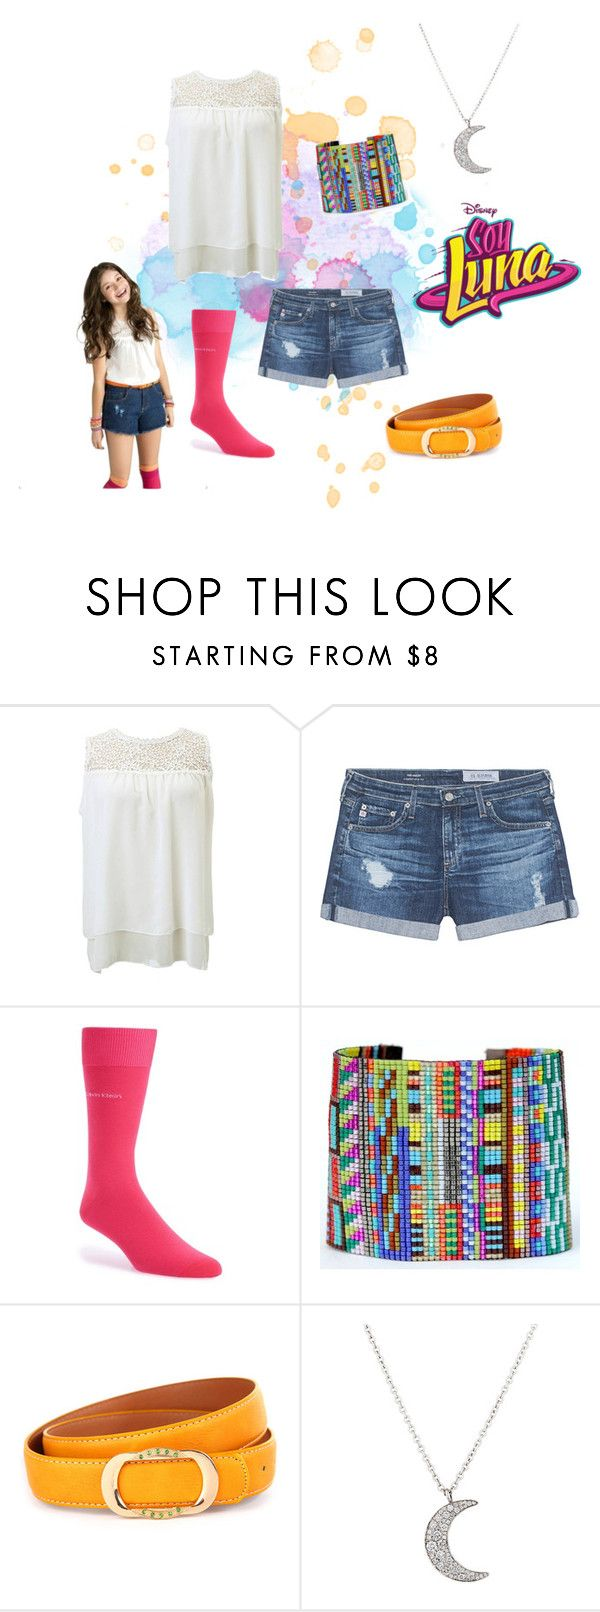 """soy luna"" by maria-look on Polyvore featuring AG Adriano Goldschmied, Calvin Klein, Julie Rofman and Finn"